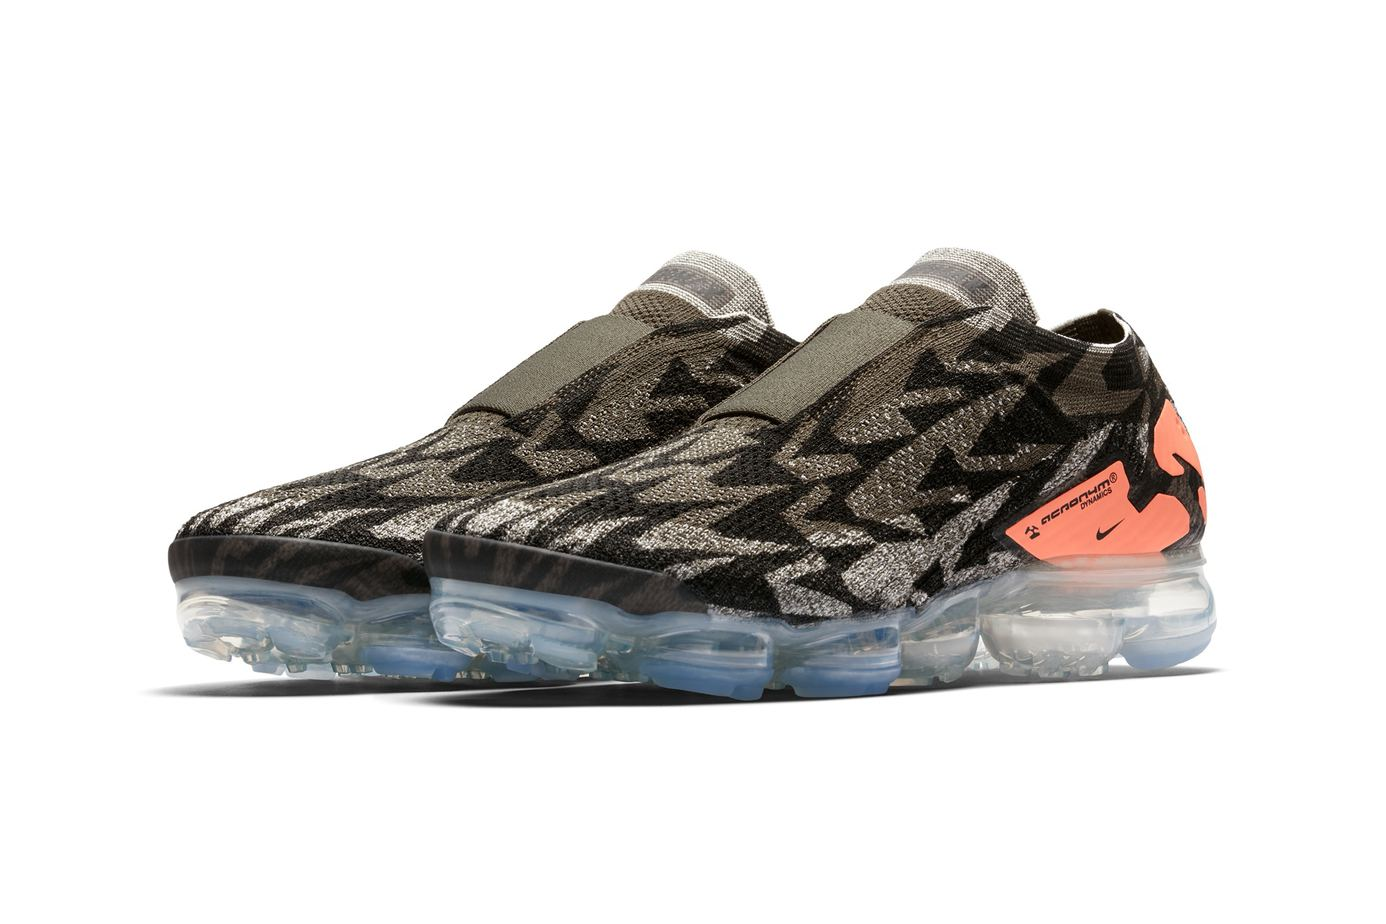 """6c7d80511ca Acronym x Nike Air VaporMax Moc 2 """"Thirsty Bandit"""" Release Date  May 15"""